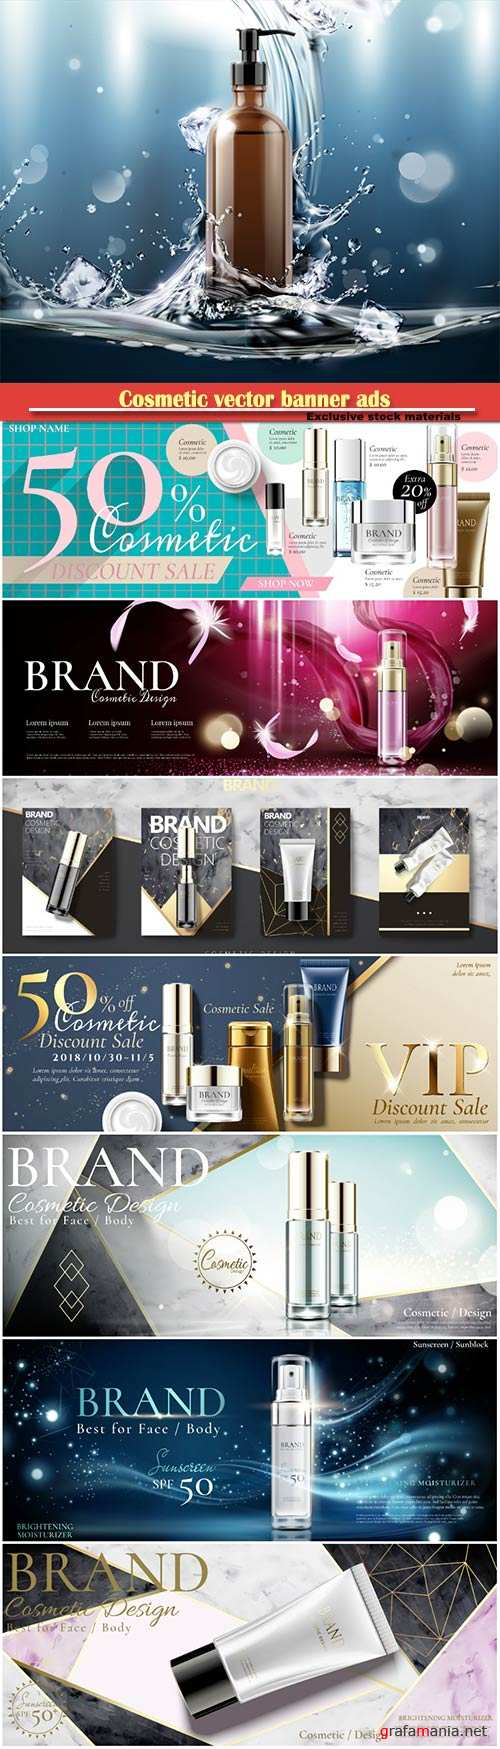 Cosmetic vector banner ads with spray bottle in 3d illustration